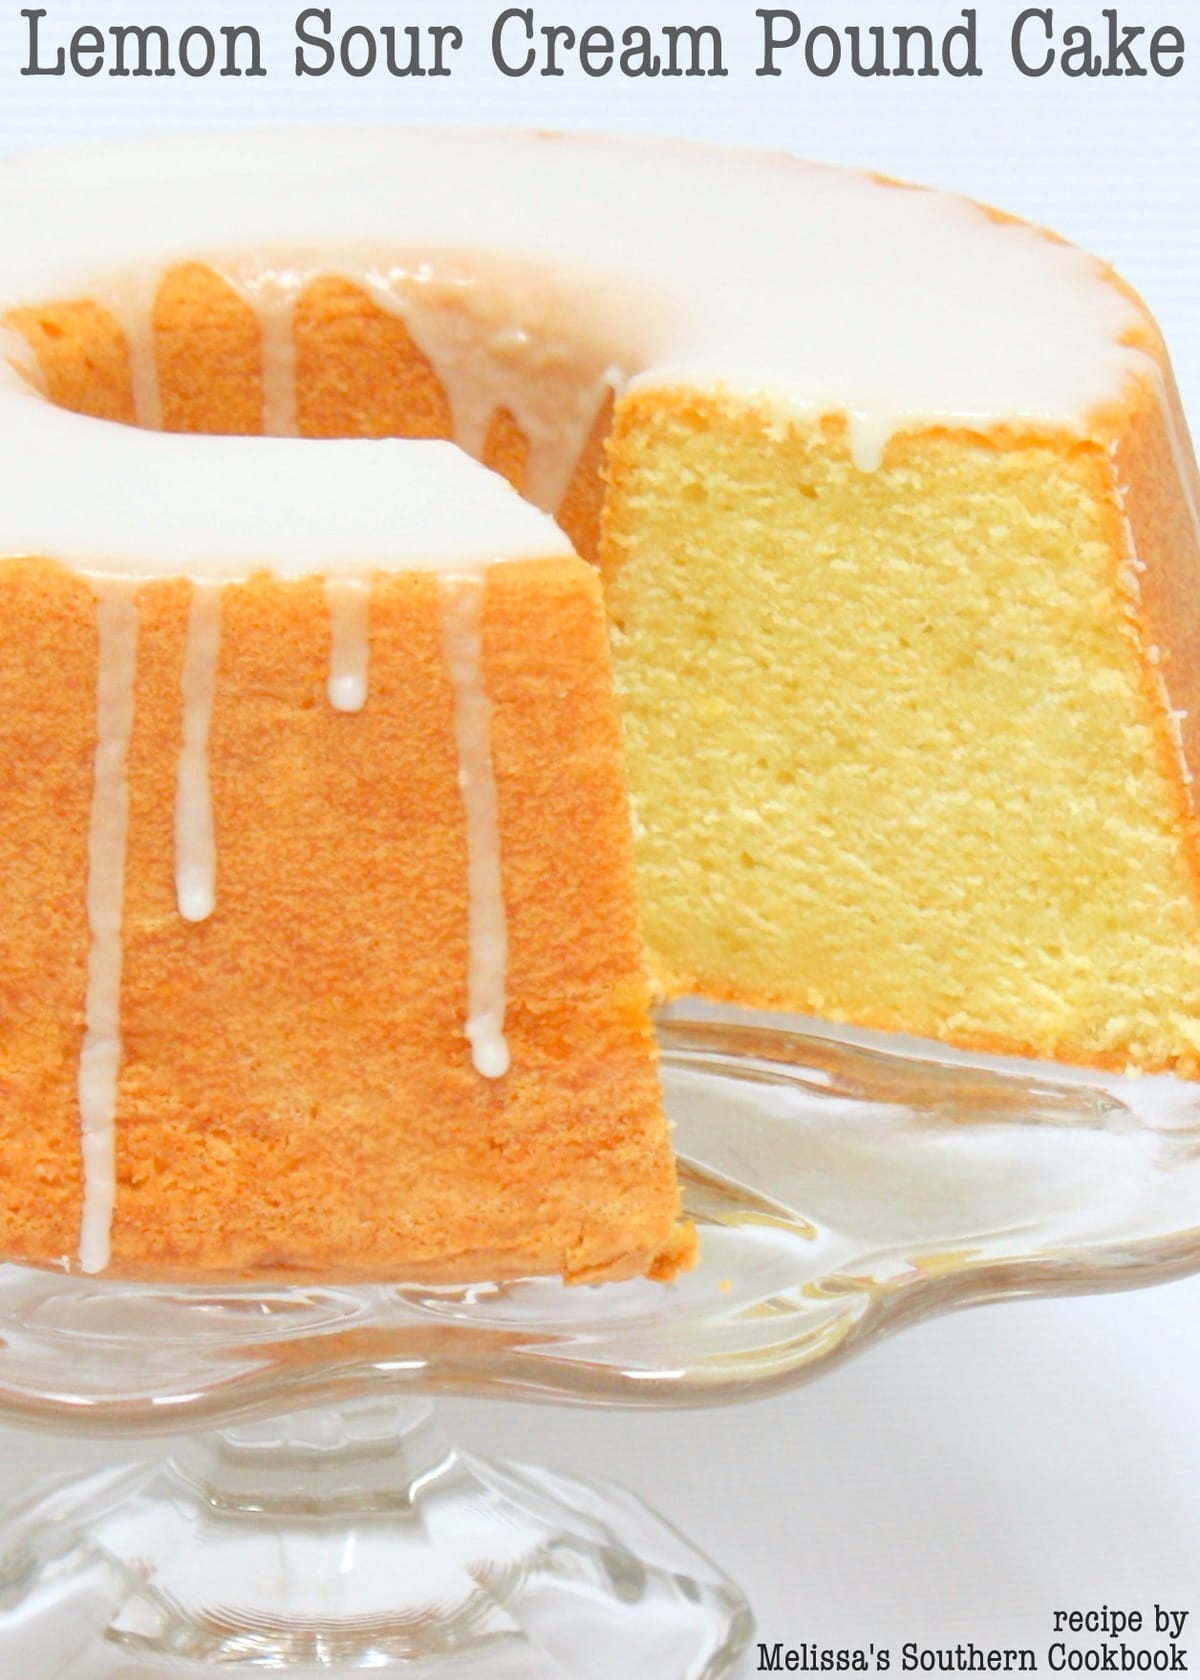 Lemon Sour Cream Pound Cake Recipe Cookbook Giveaway Now